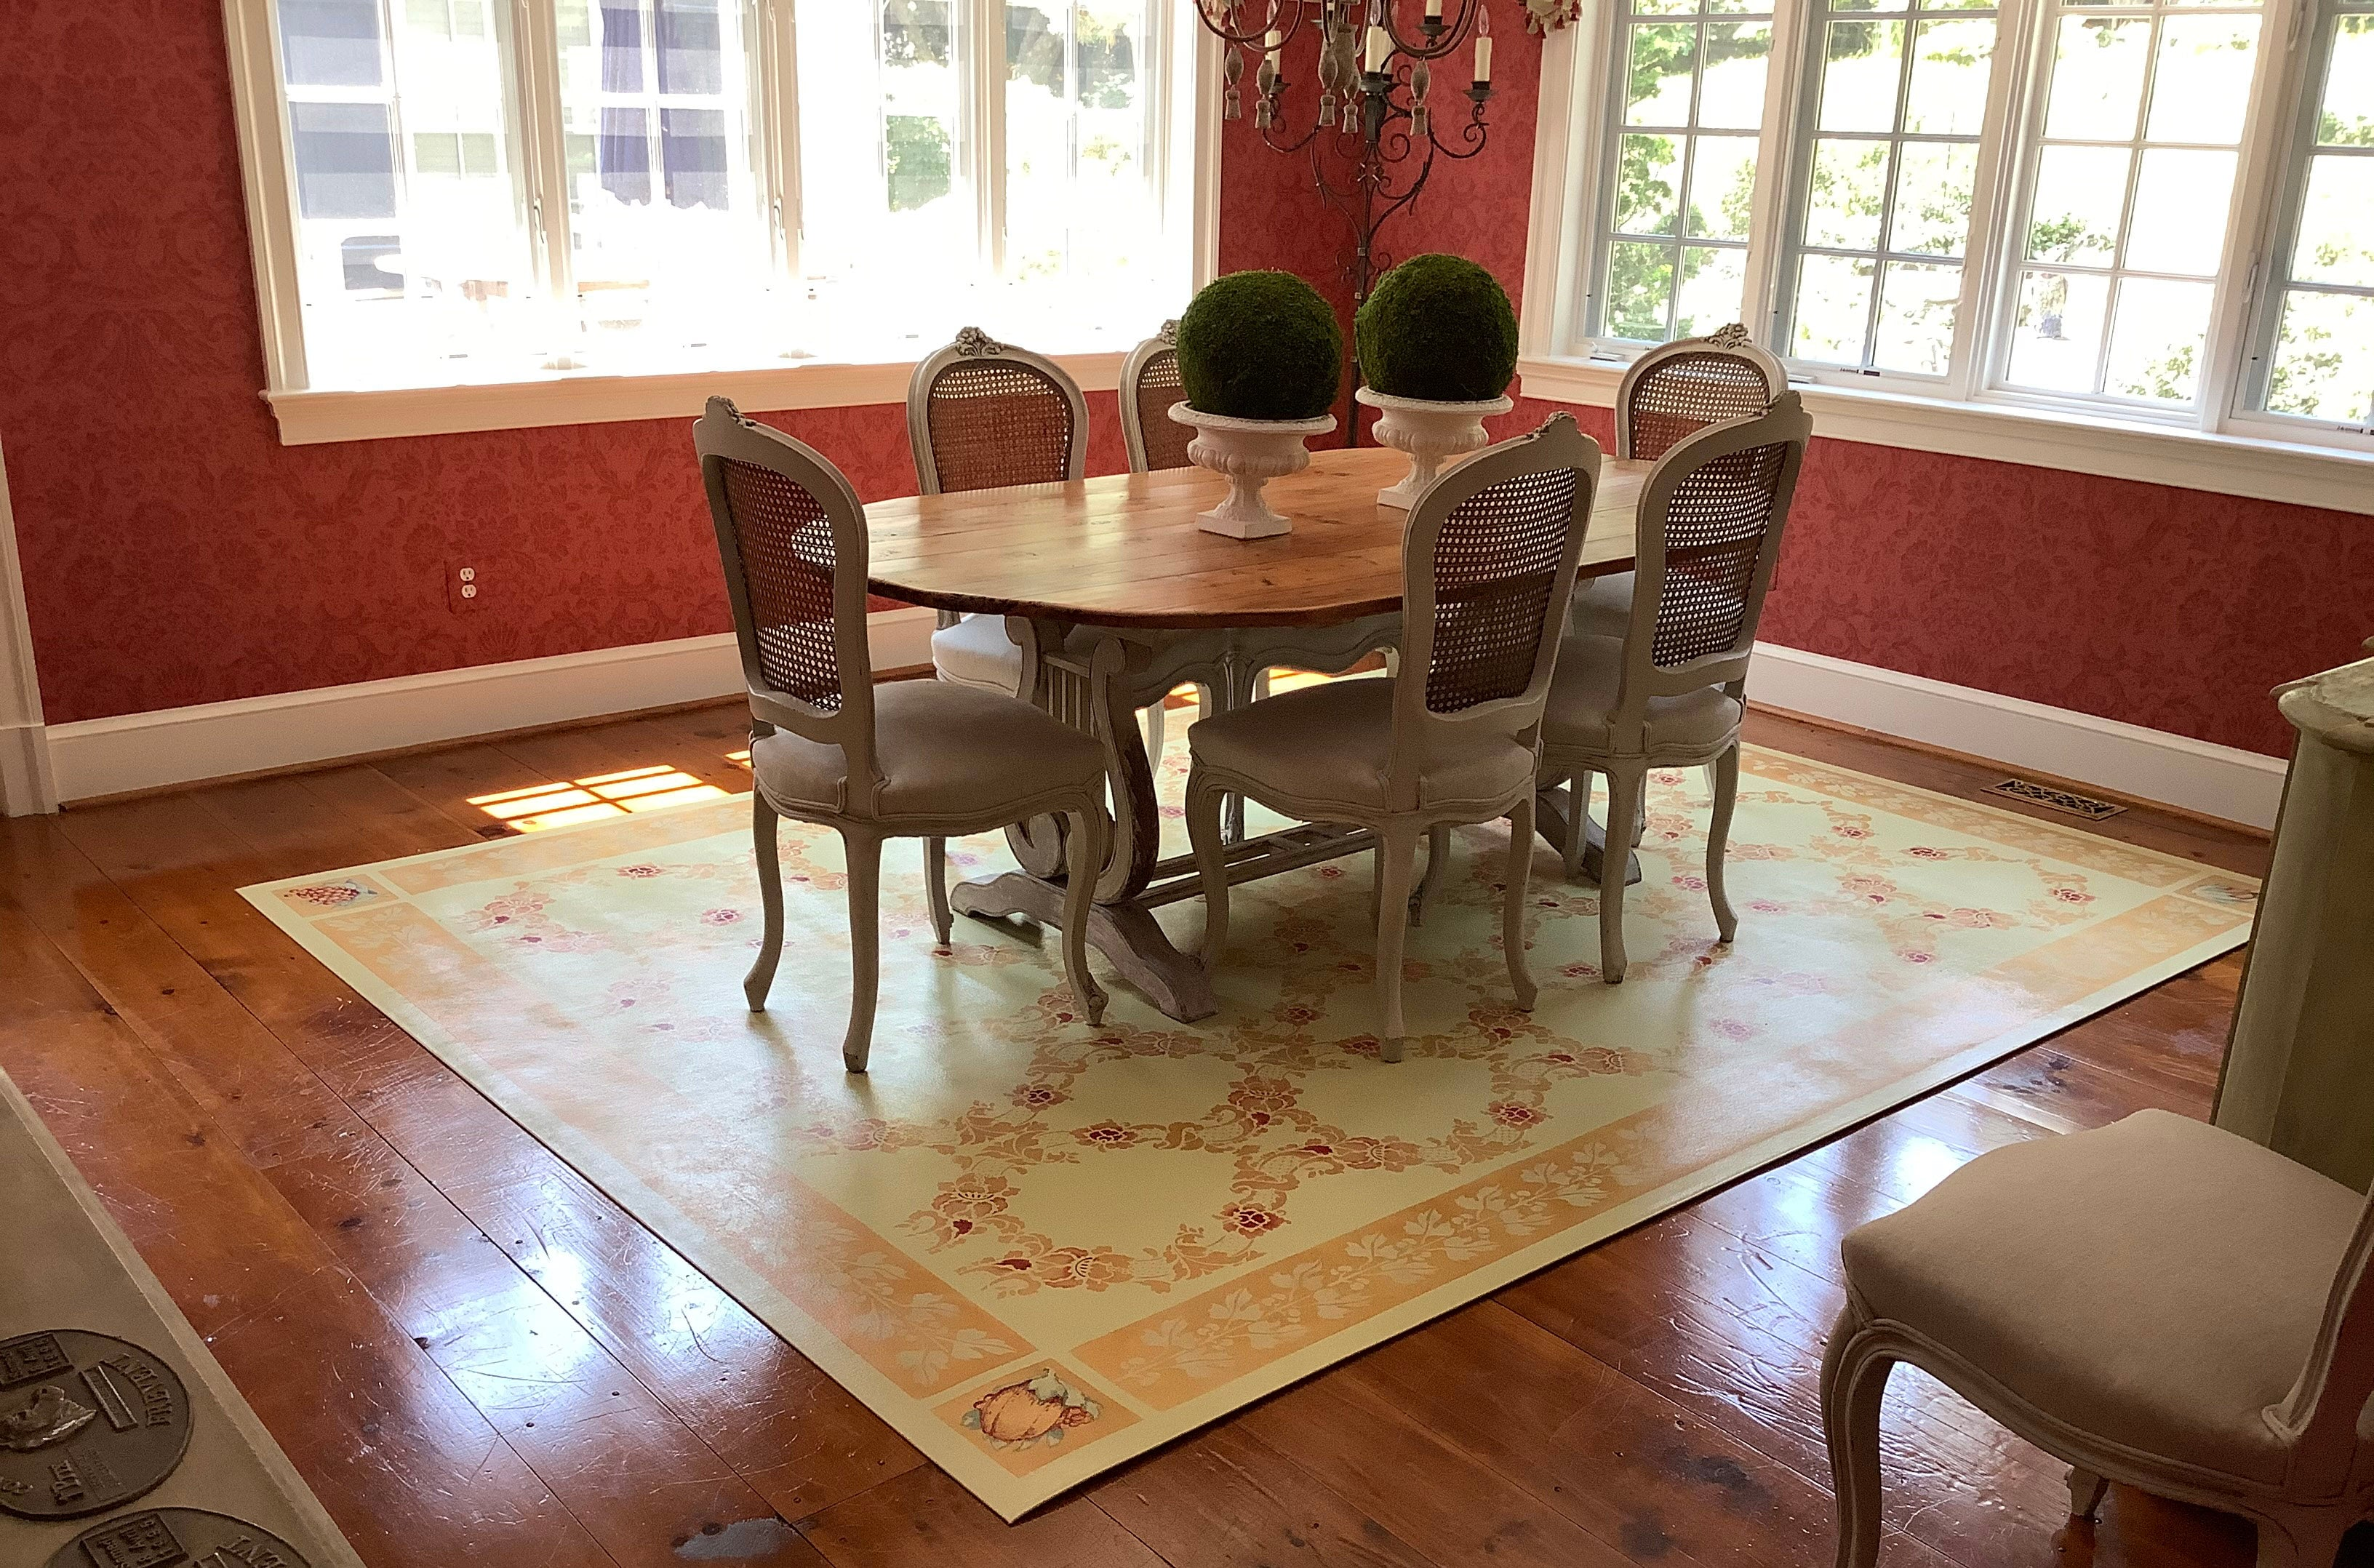 In-situ image of this custom floorcloth with a trellis-like center and border vines.